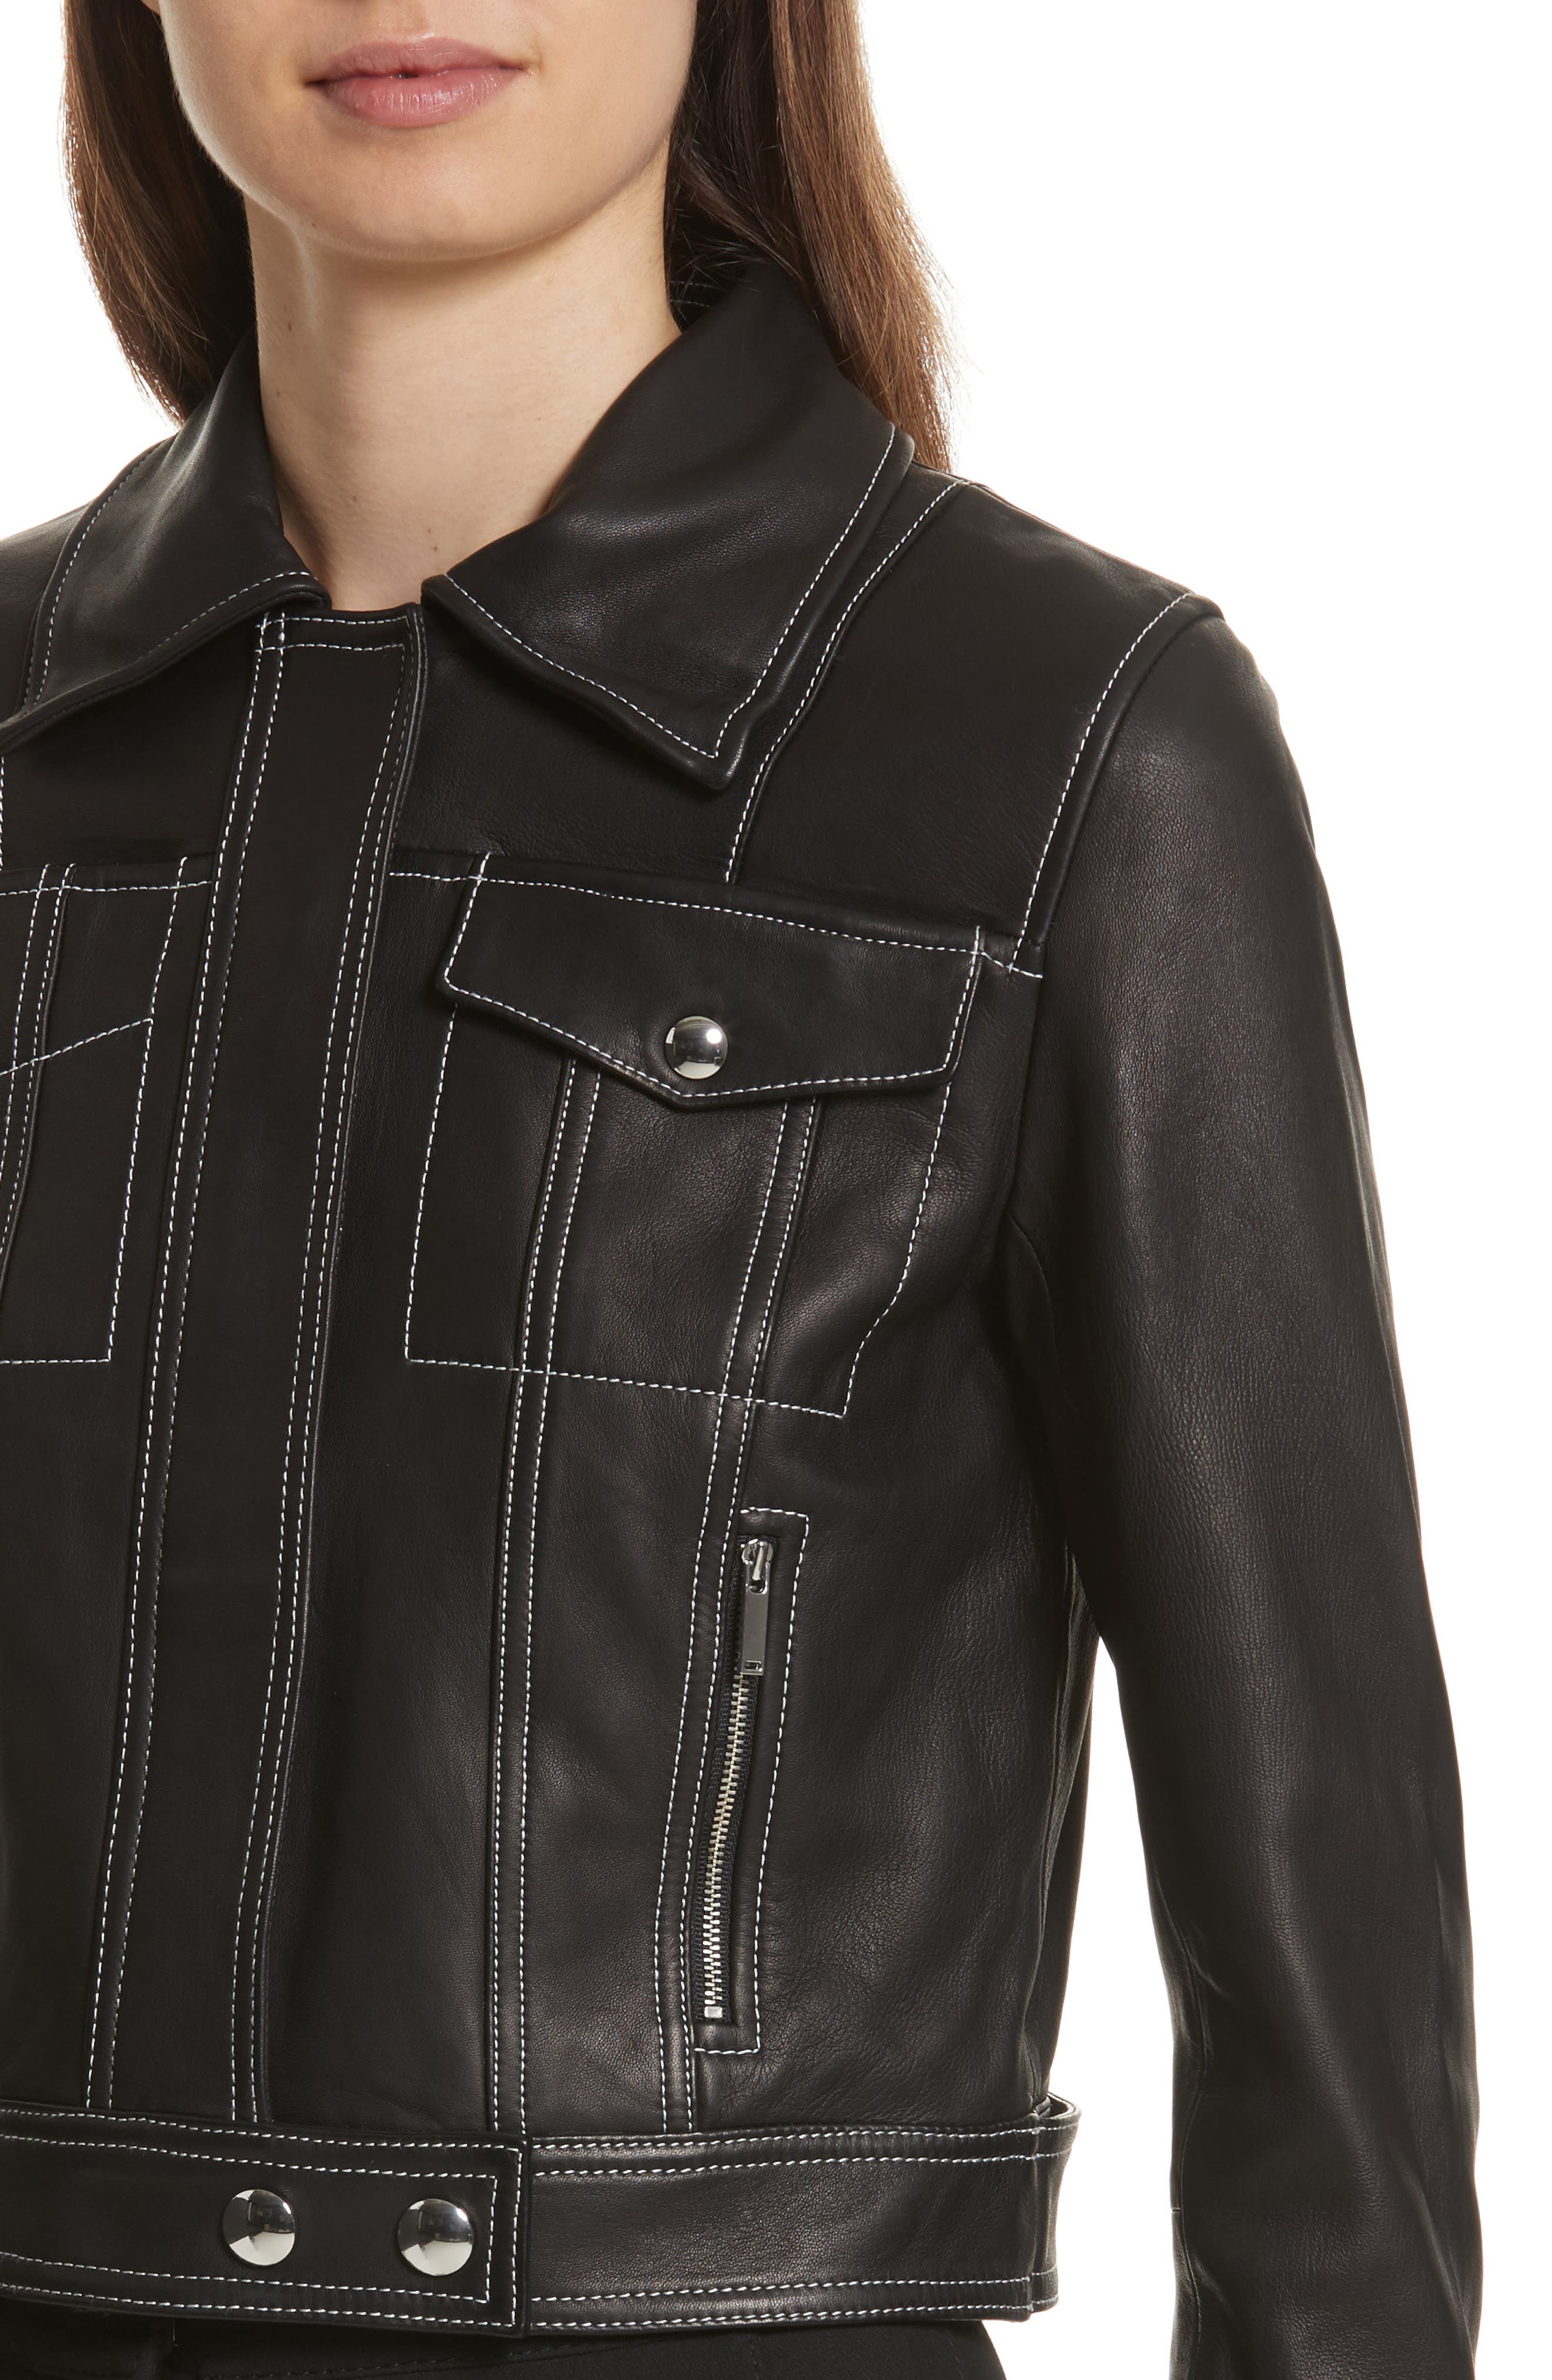 GREY Jason Wu Shrunken Leather Jacket with Removable Genuine Shearling Collar,                             Alternate thumbnail 4, color,                             009